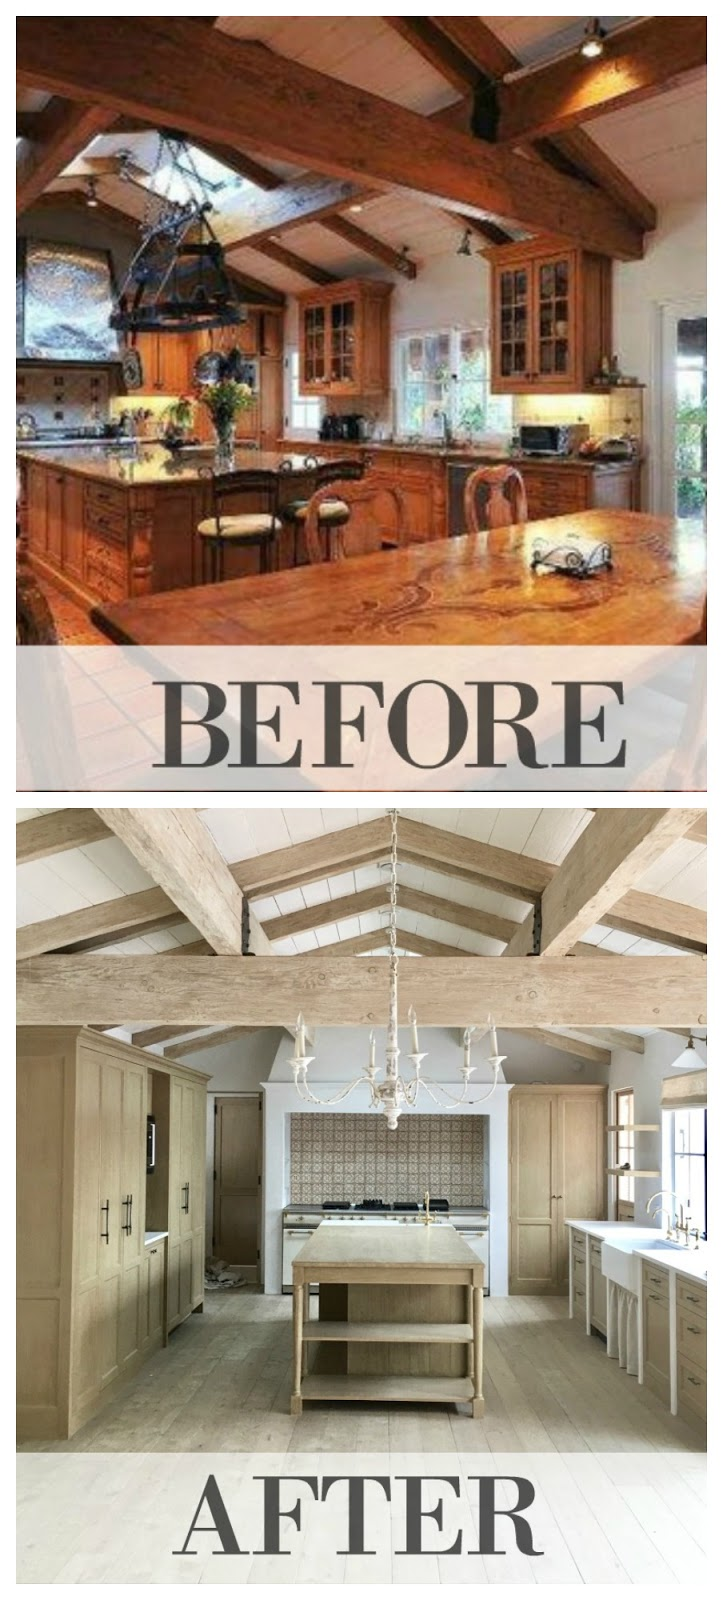 Before and after renovation modern farmhouse Malibu Giannetti Home